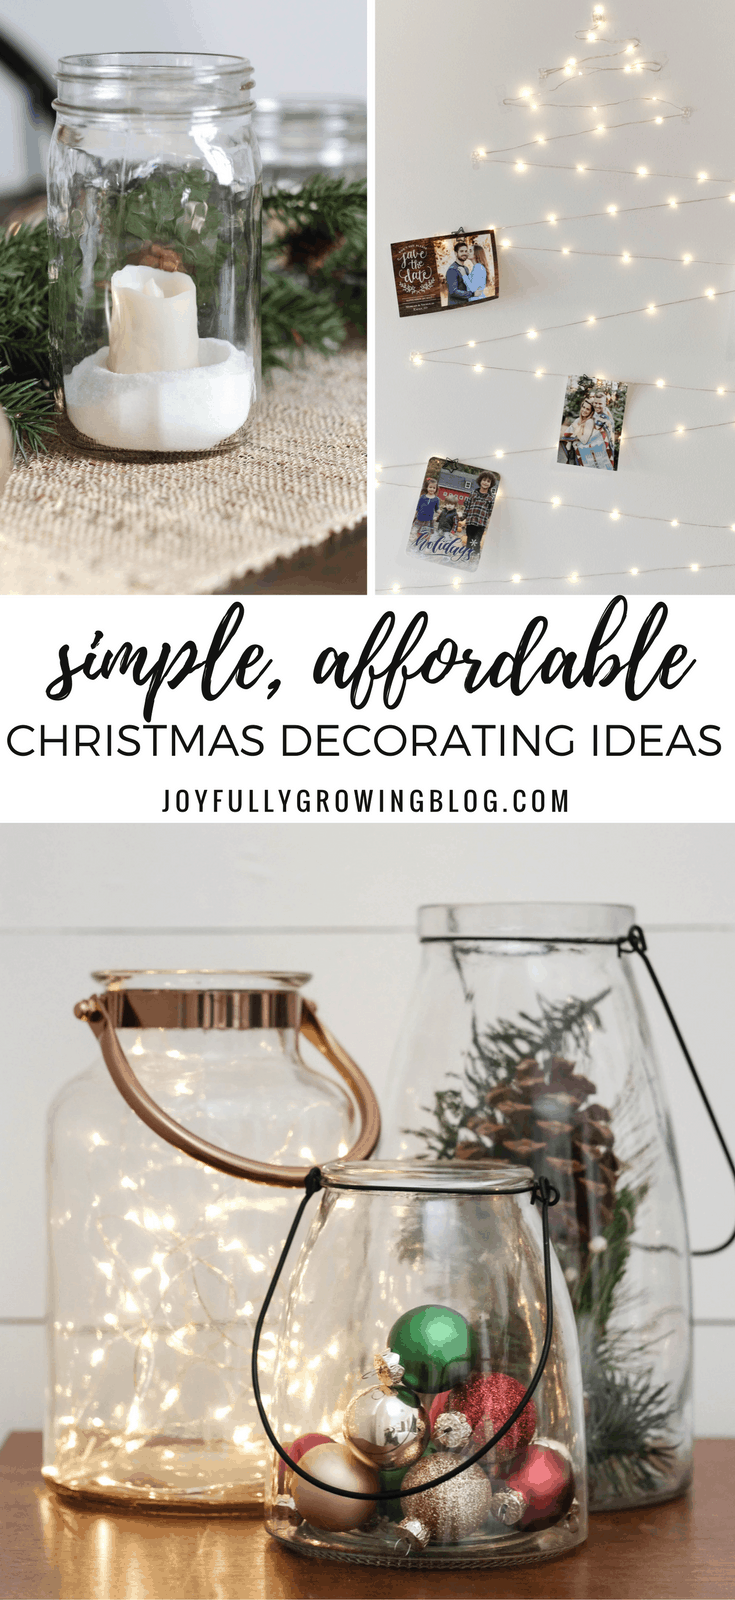 Simple and Affordable Christmas Decorating Ideas